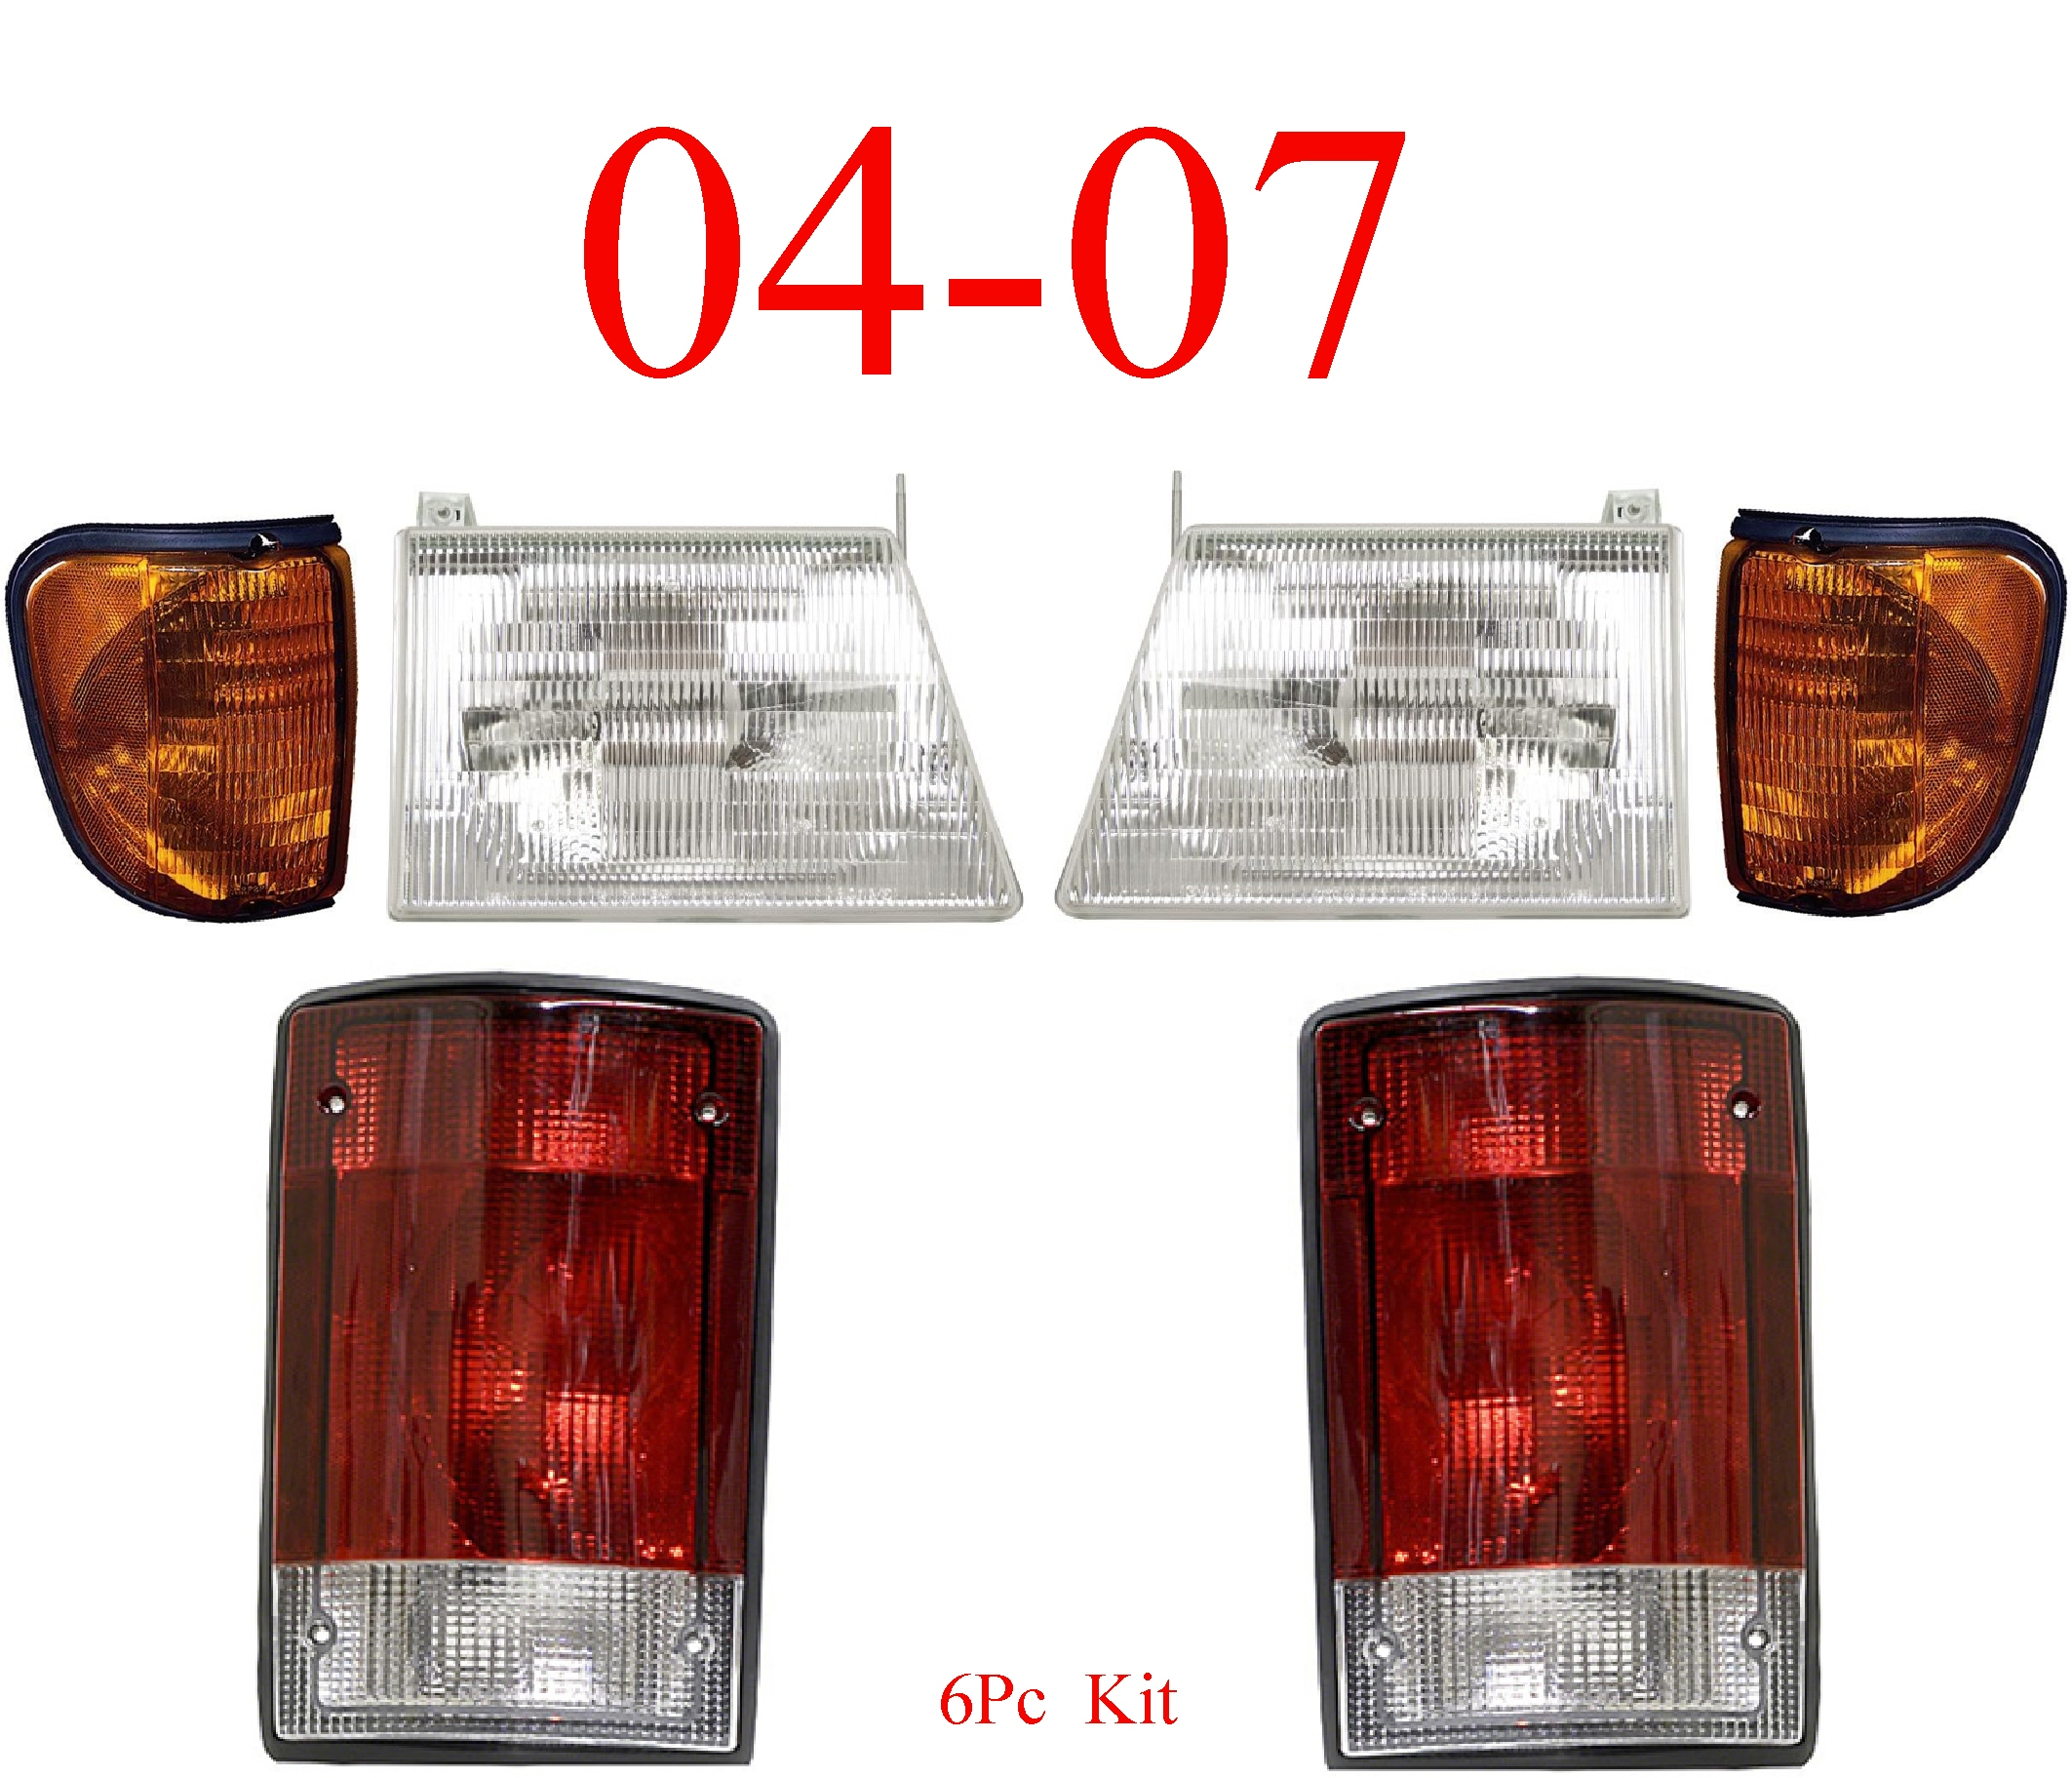 04-07 Ford Econoline 6Pc Head, Side & Tail Light Kit